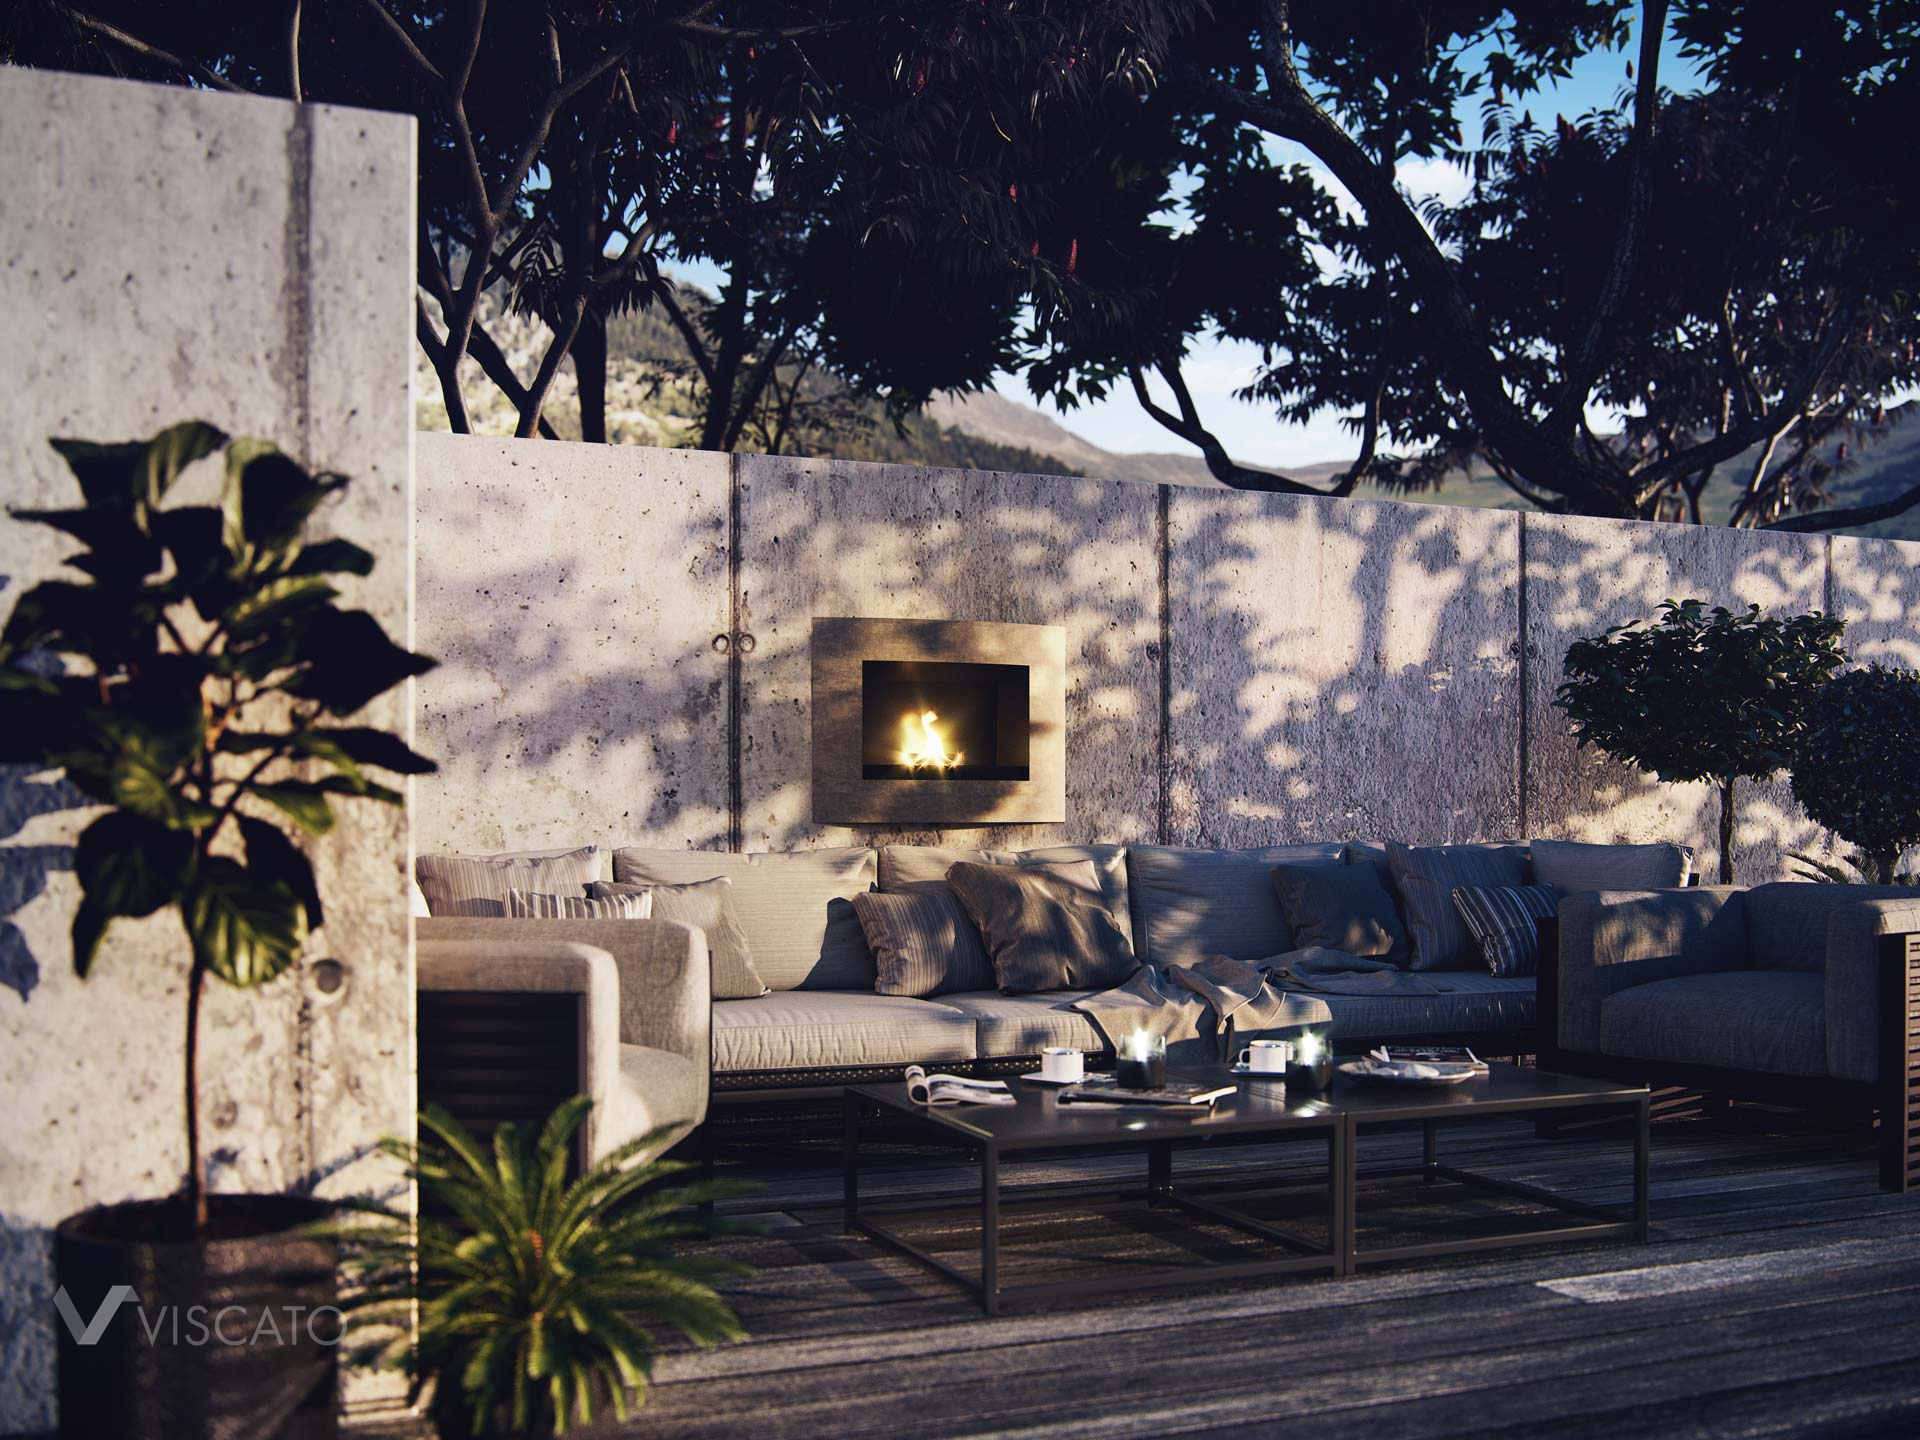 Fireplace placed outside, 3D visualization